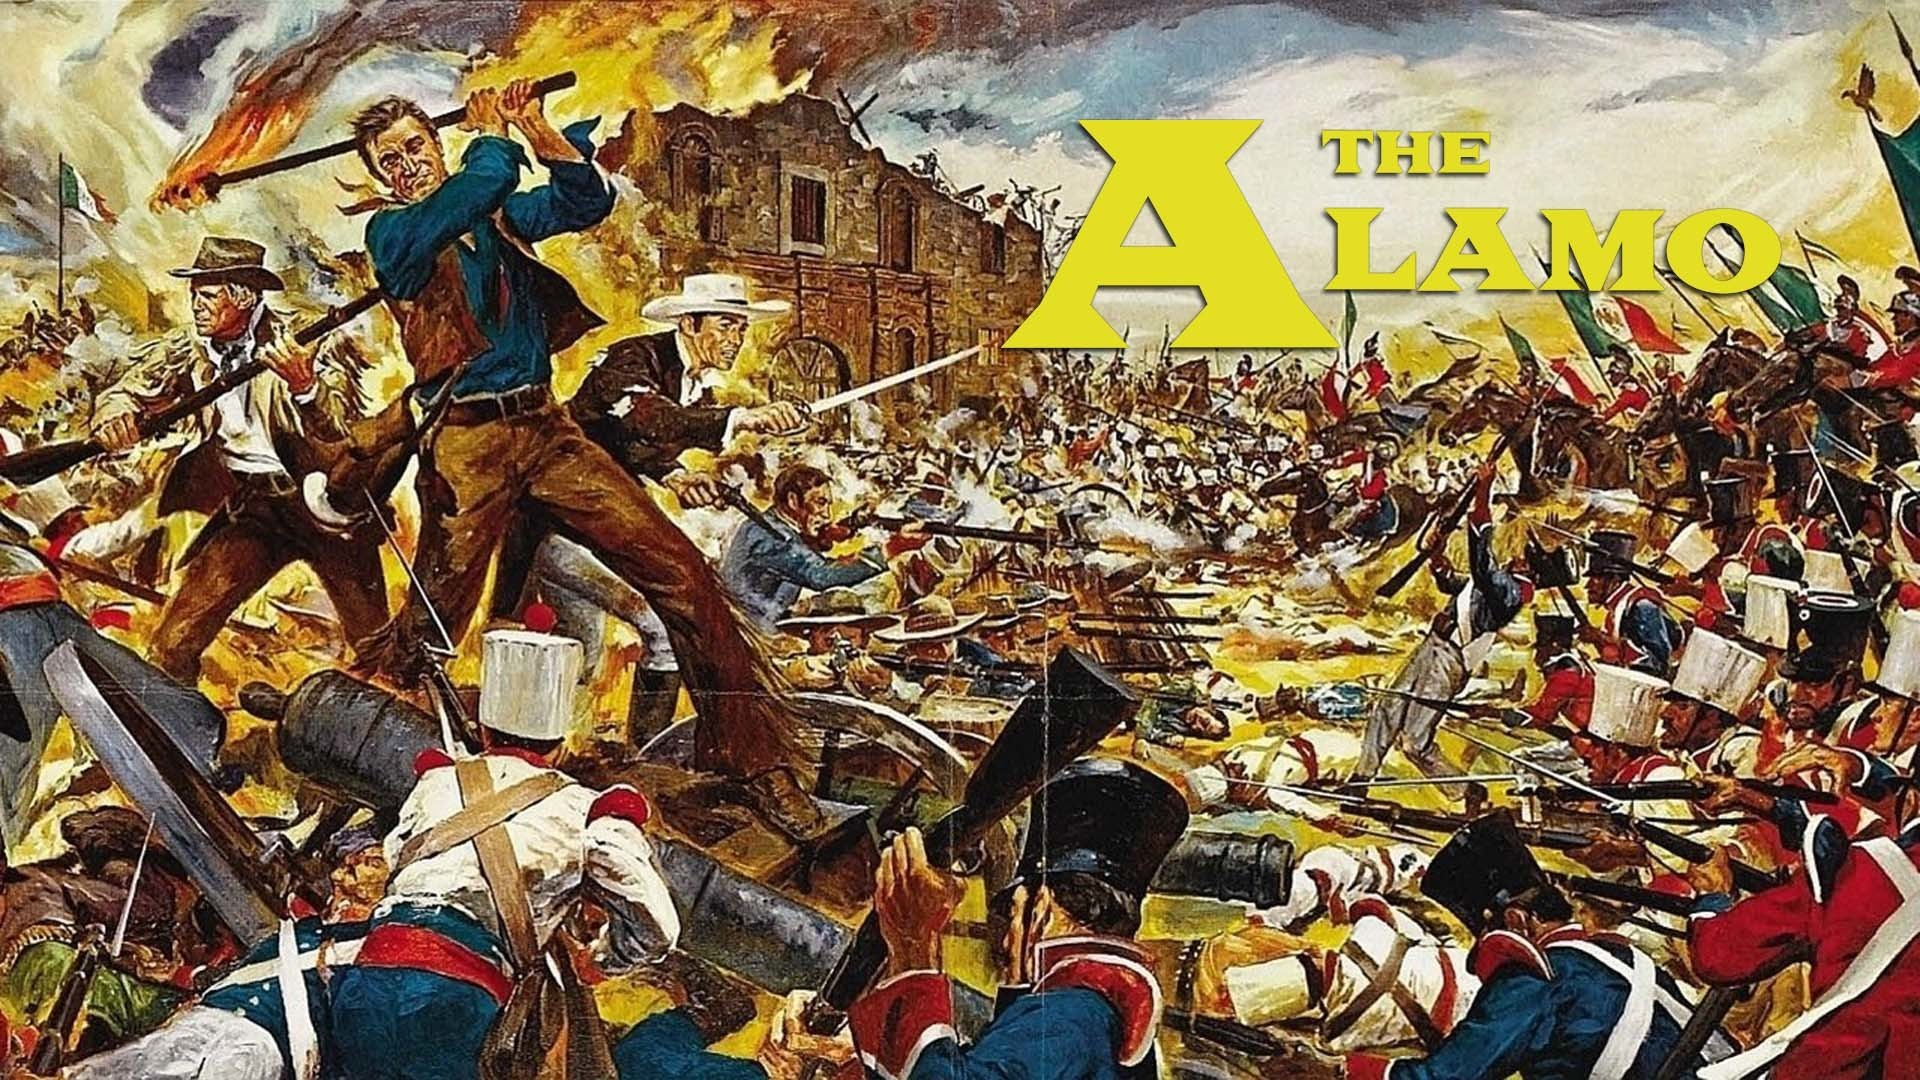 battle of the alamo research paper The alamo covered around 3 acres of land which was surrounded with an adobe wall that was between 9 and 12 feet tall interesting facts about the battle of the alamo between 400 and 600 mexican soldiers were killed in the battle estimates on the number of texans killed vary from 182 to 257.